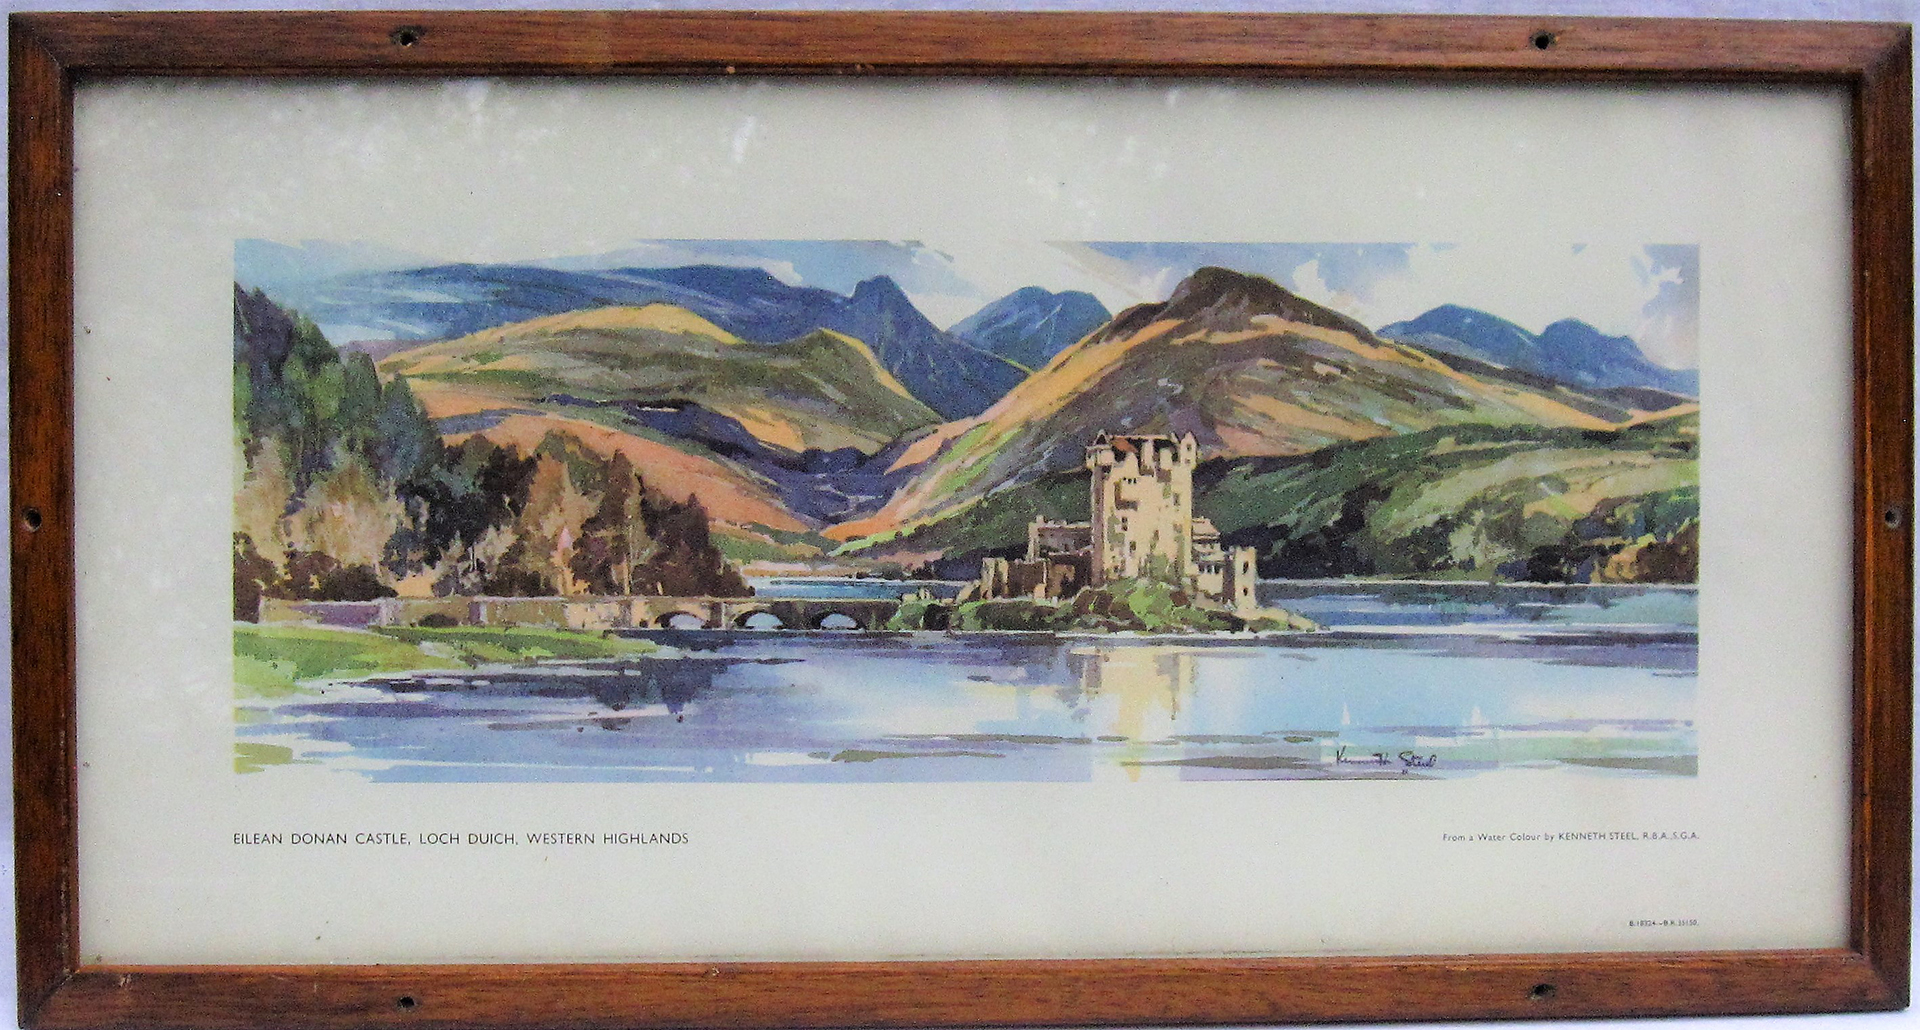 Framed and Glazed Carriage Print. EILEAN DONAN CASTLE by Kenneth Steel. Original type frame.